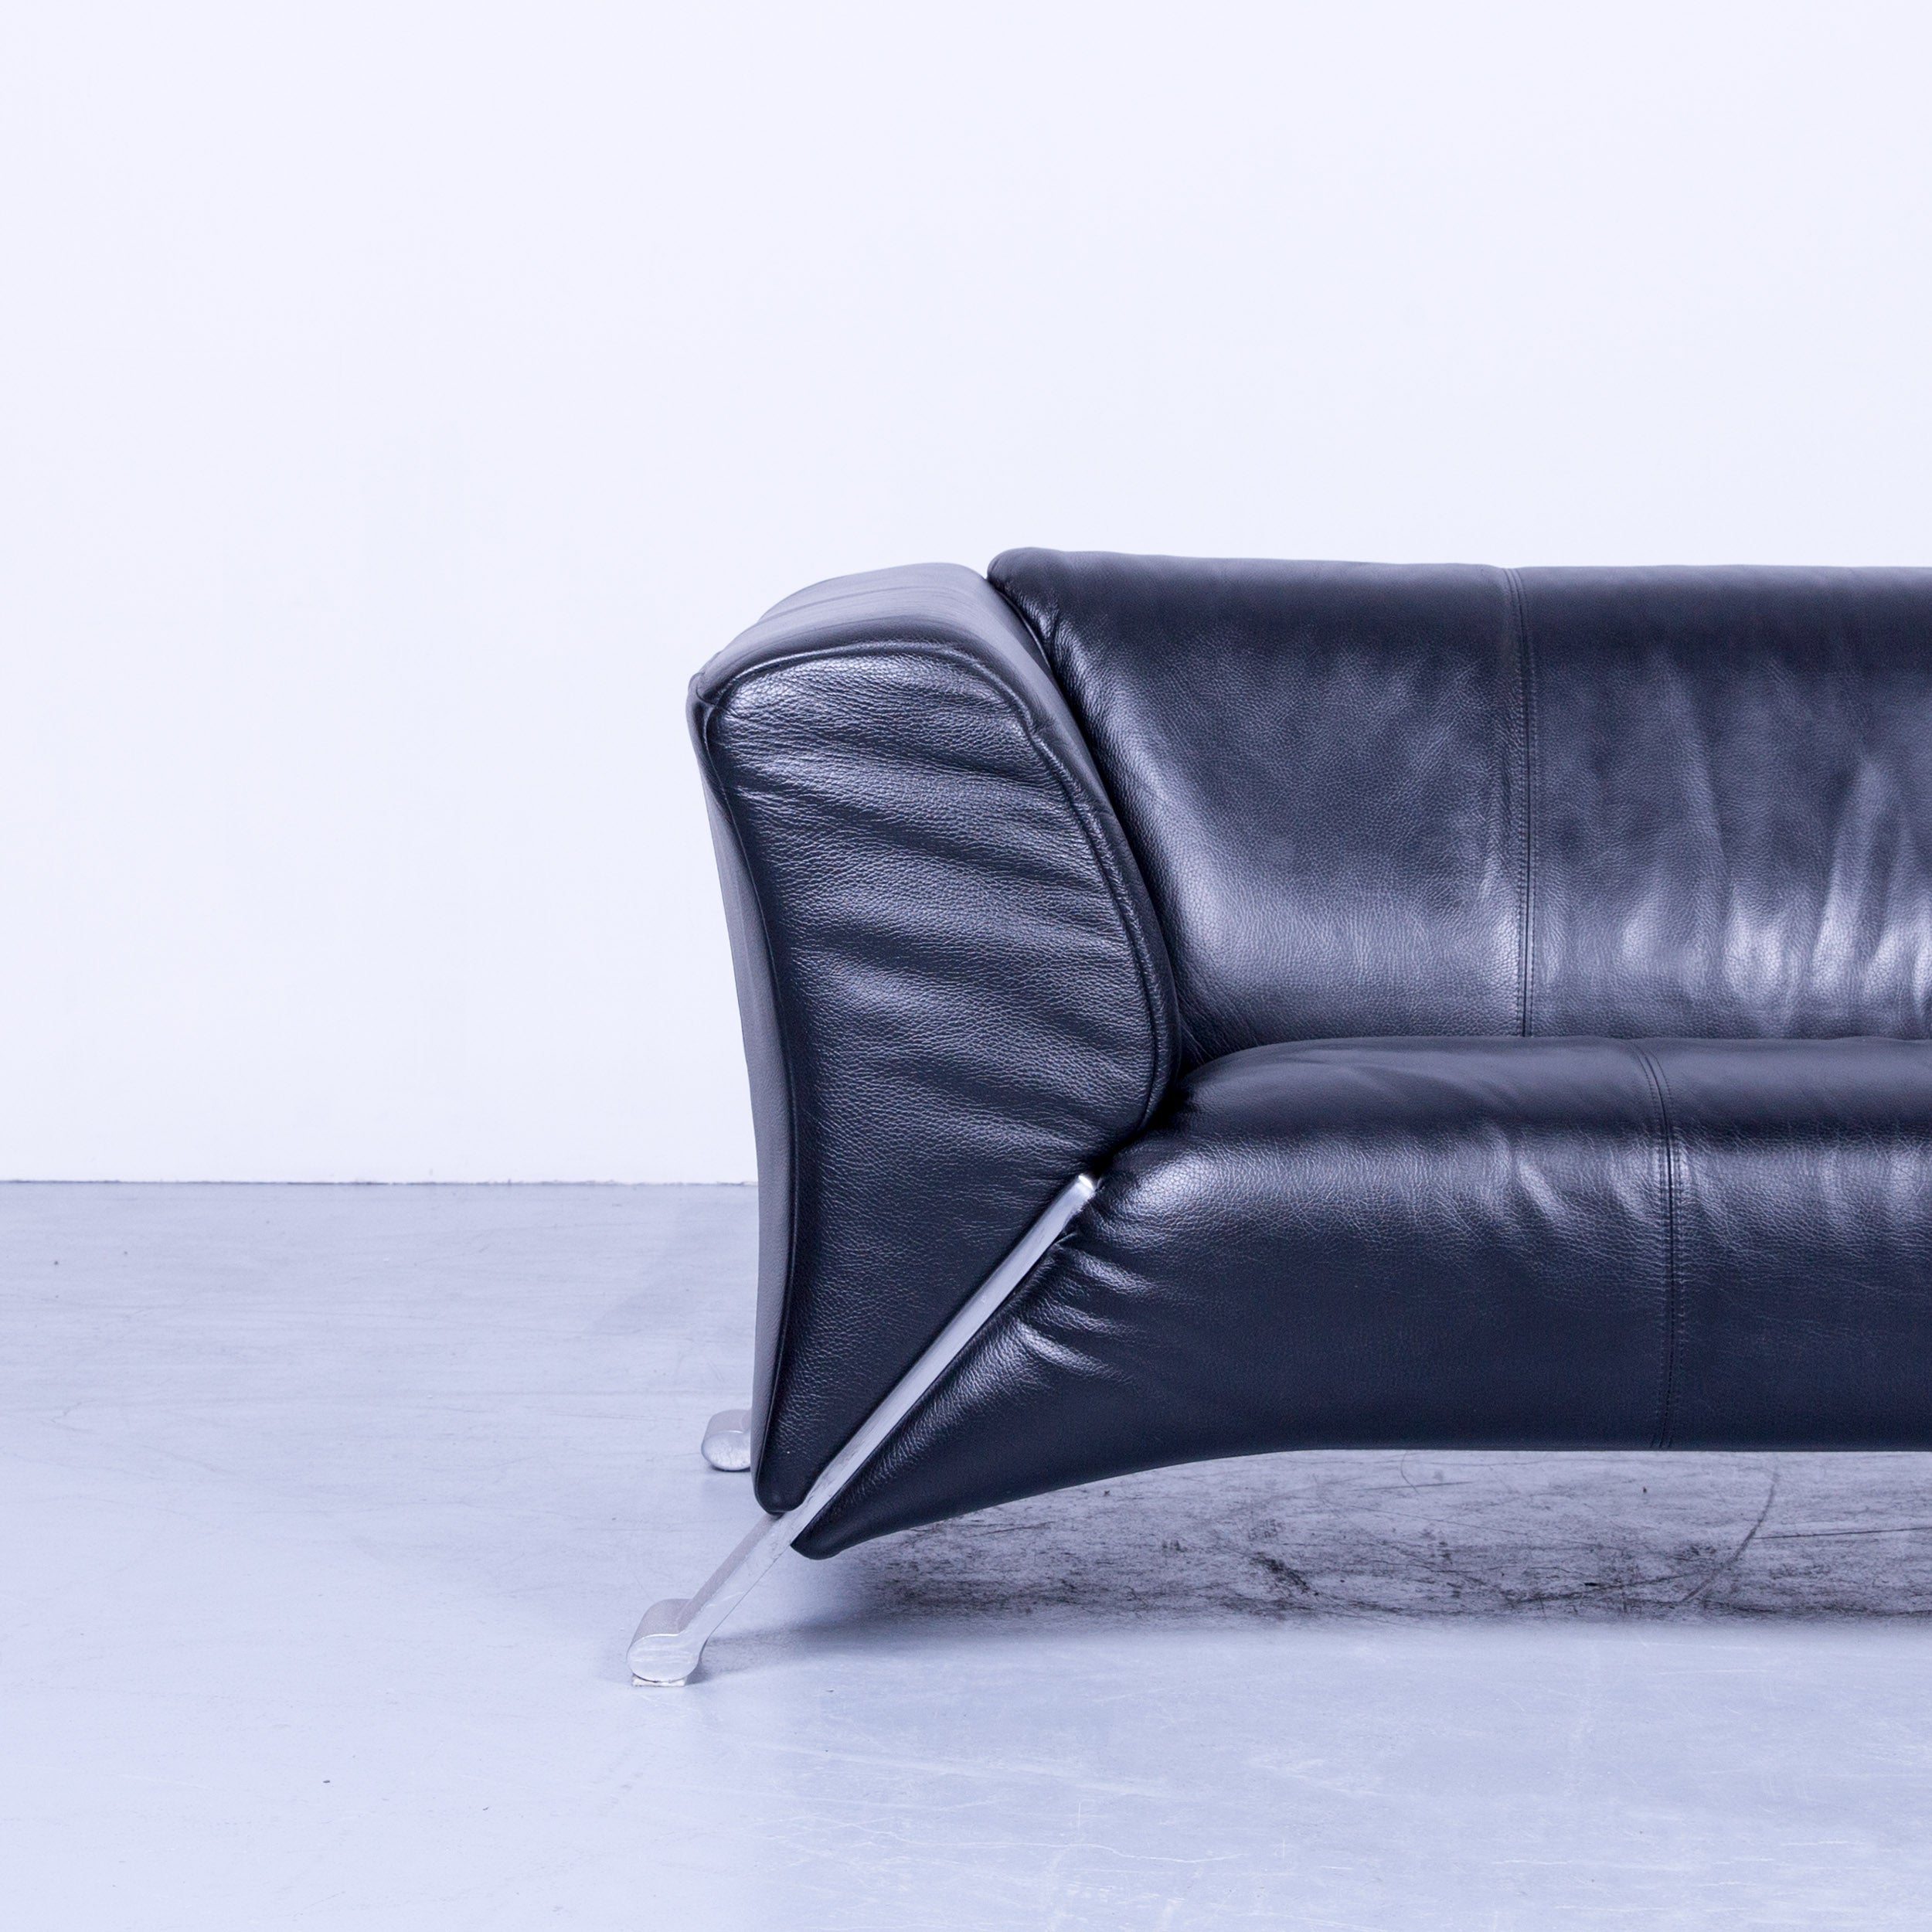 Rolf Benz 322 Designer Sofa Black Three Seat Leather Modern Couch